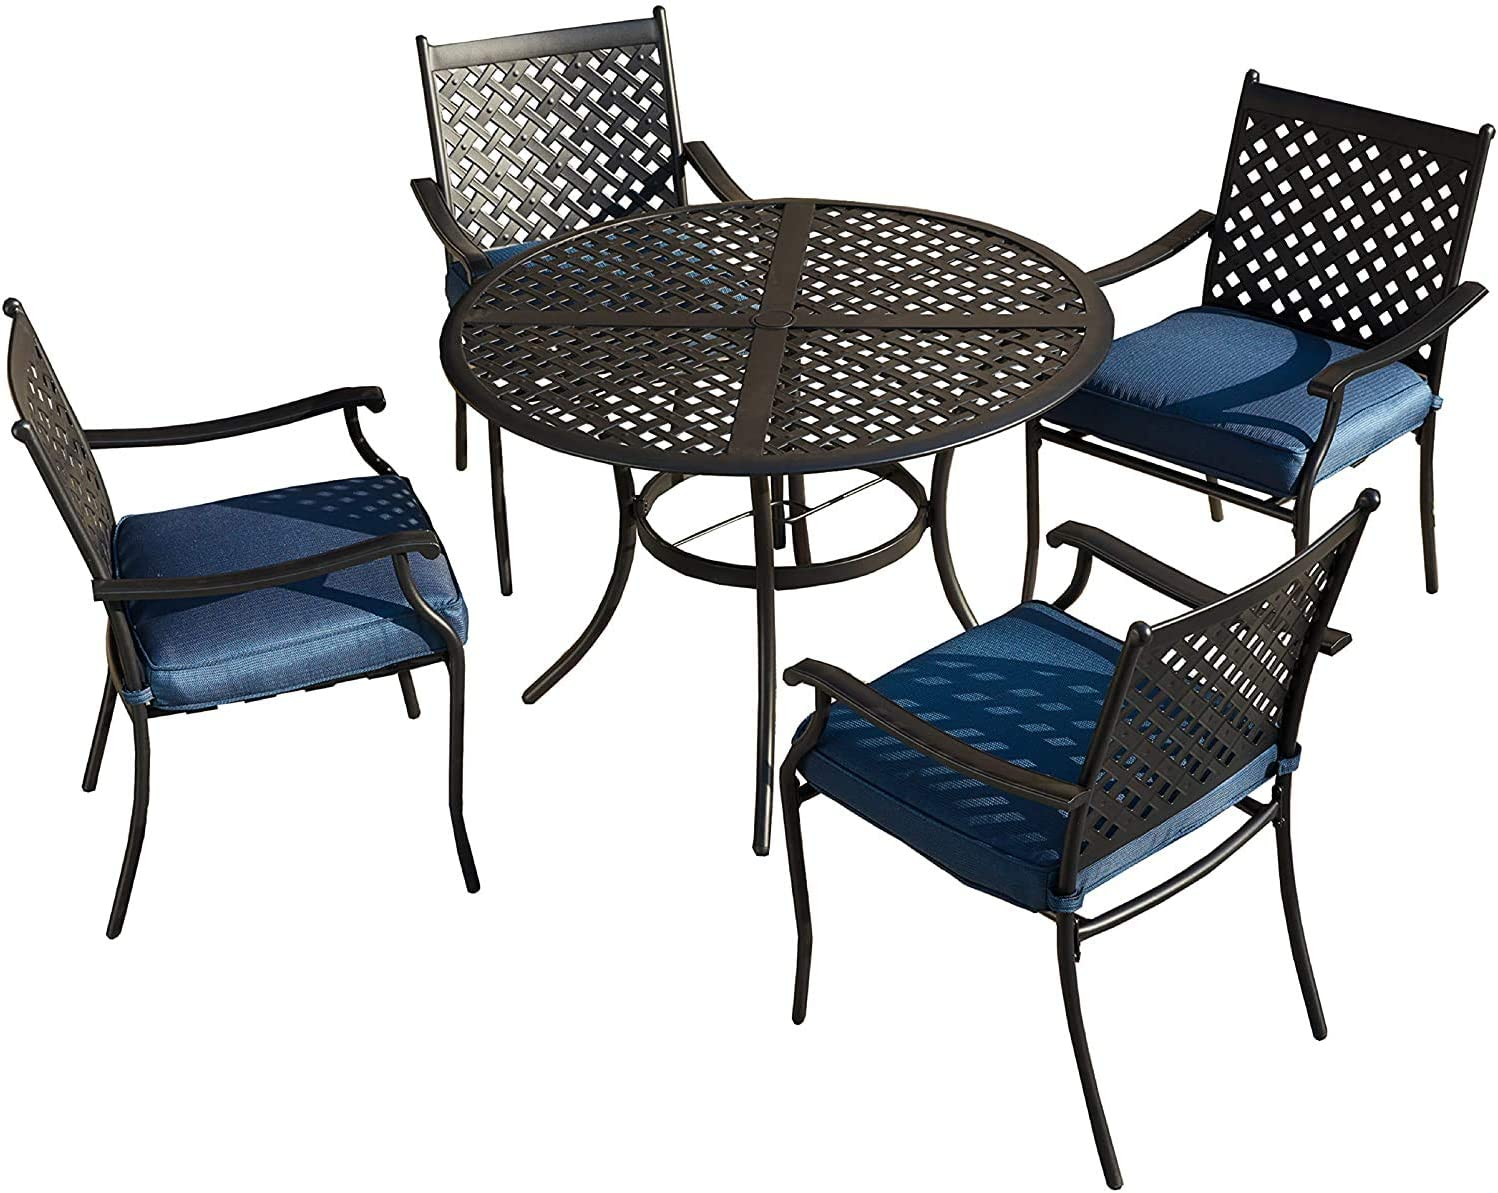 LOKATSE HOME 5-Piece Outdoor Patio Metal Dining Set with Iron Armrest Cushioned Chairs and Steel Round Table with Umbrella Hole, Blue